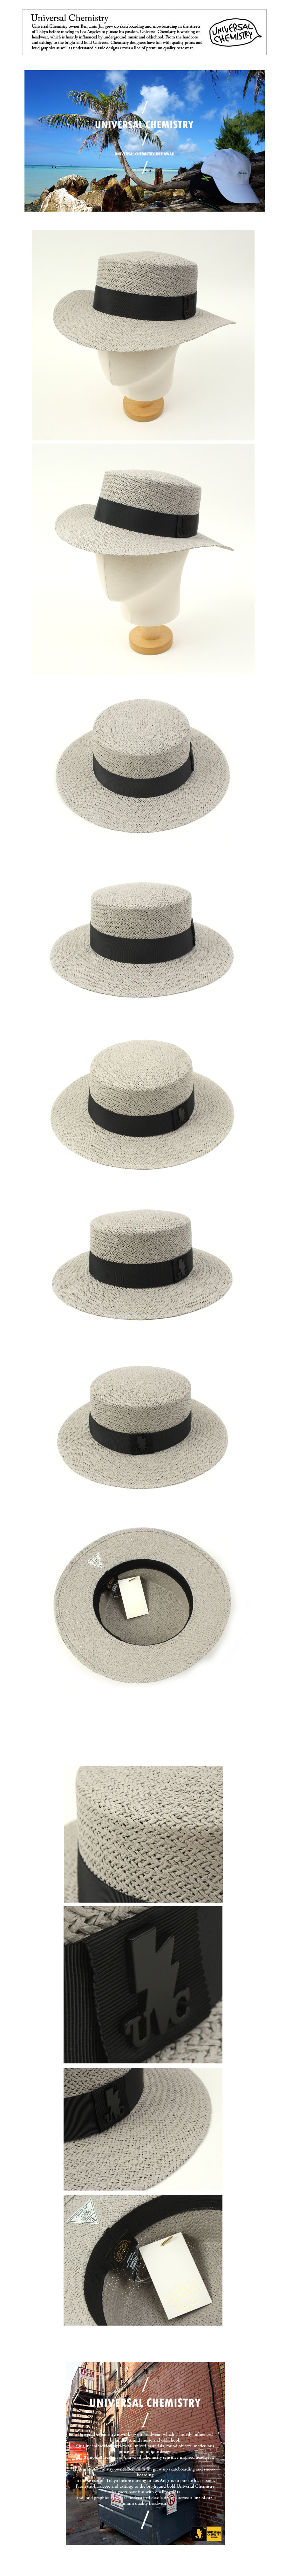 Black Line Gray Panama Hat 파나마햇